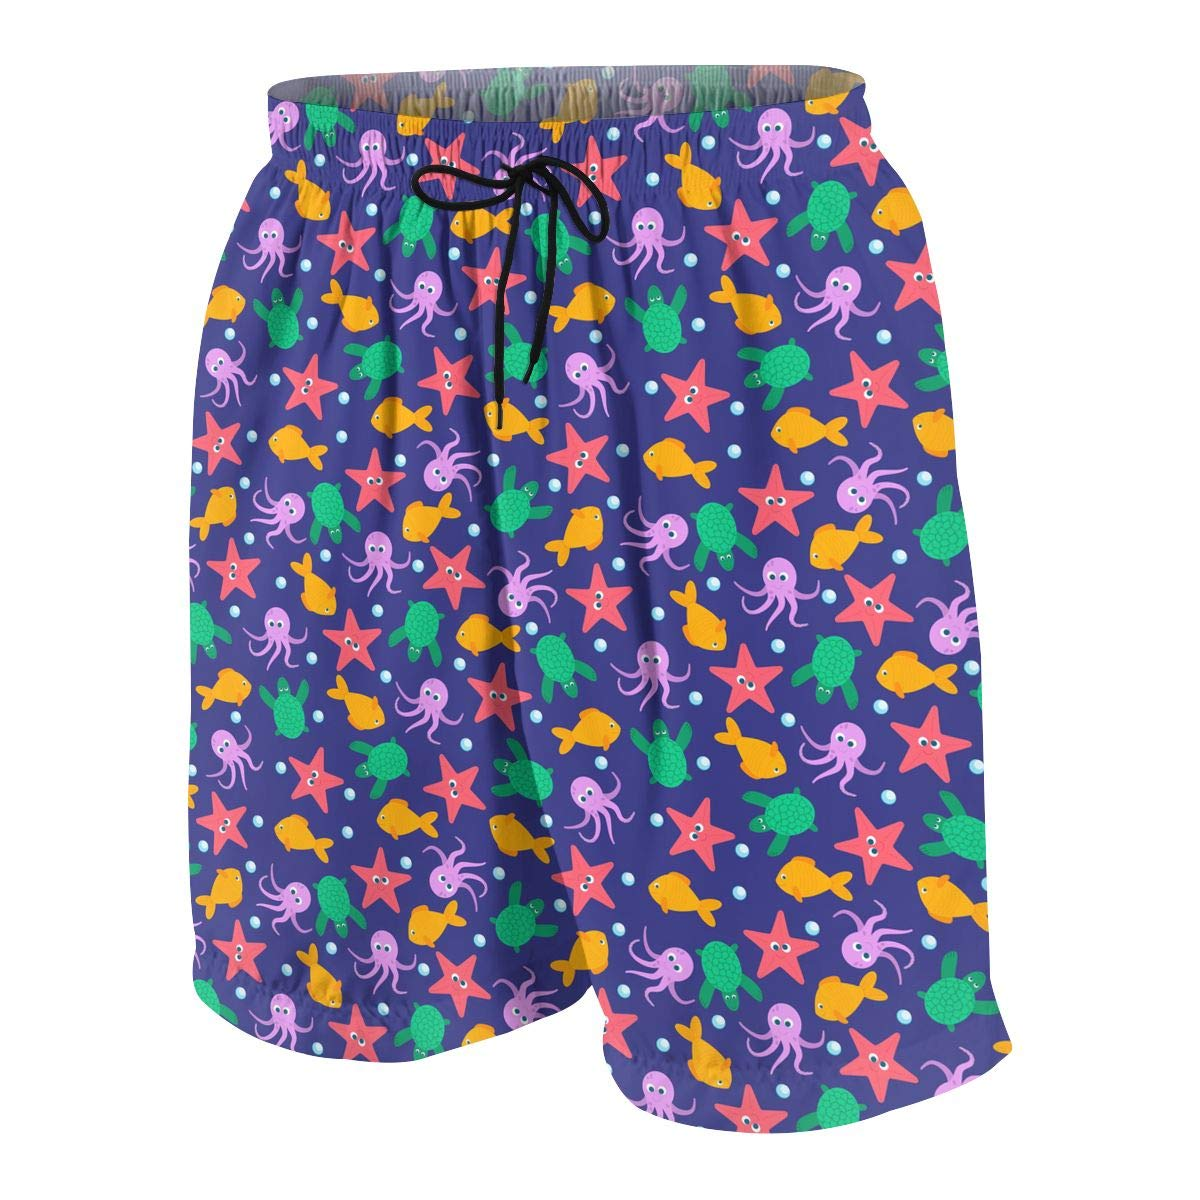 Youth 3D Printed Beach Shorts Polyester Fish,Octopus,Turtle Pattern Beachwear with Pockets